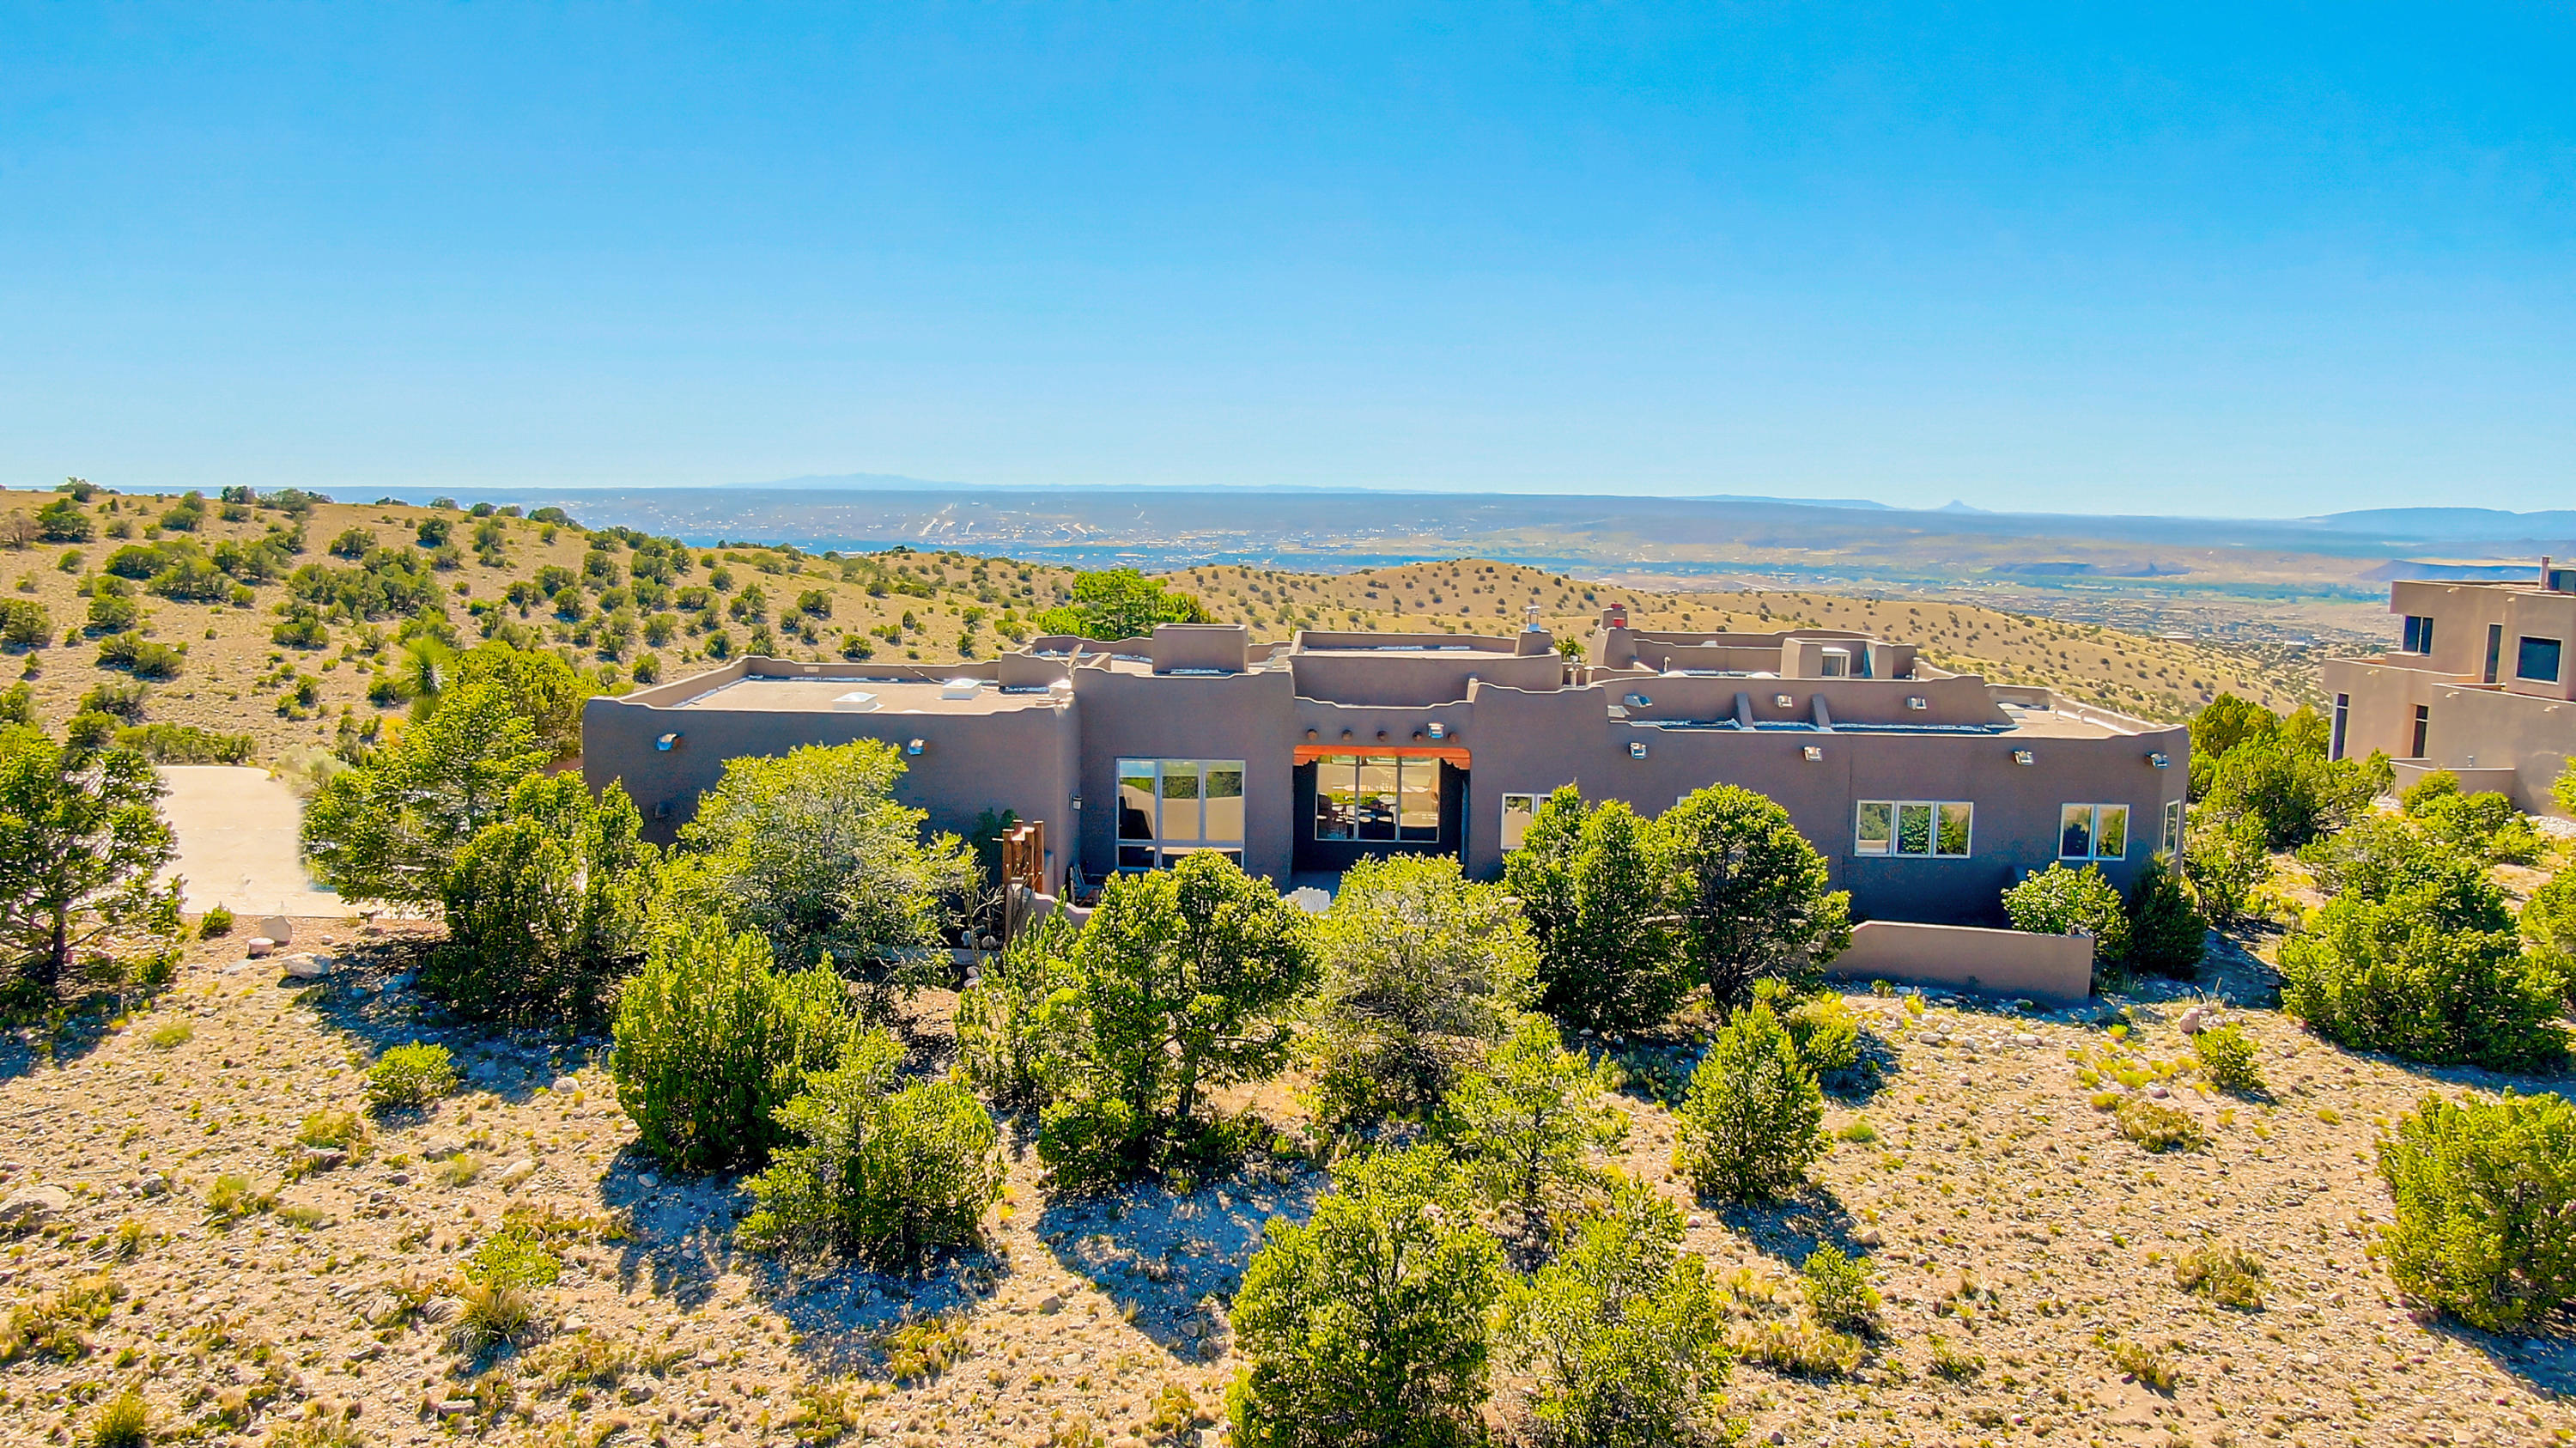 It's all about the VIEWS and New Mexico lifestyle! This much loved home showcases the panoramic vistas of NM and the touches that make it unique. Perched on a ridgetop, saltillo tile floors, split cedar latillas, and vigas, soft plastered walls, & 3 fireplaces exude a warmth rarely found. Updated kitchen with granite counters and gas stove, wine cabinet, and lots of storage plus a lovely breakfast nook.  In addition to the great room, there is a library or tv room with new wood floors. The large master bedroom features a fireplace, french doors to the west patio, and a large window to gaze at the stars. Two generous sized closets and luxurious bath complete this suite. 3 other bedrooms with views just down the hall. Lovely landscaped east and west courtyards with flagstone floors to enjoy!